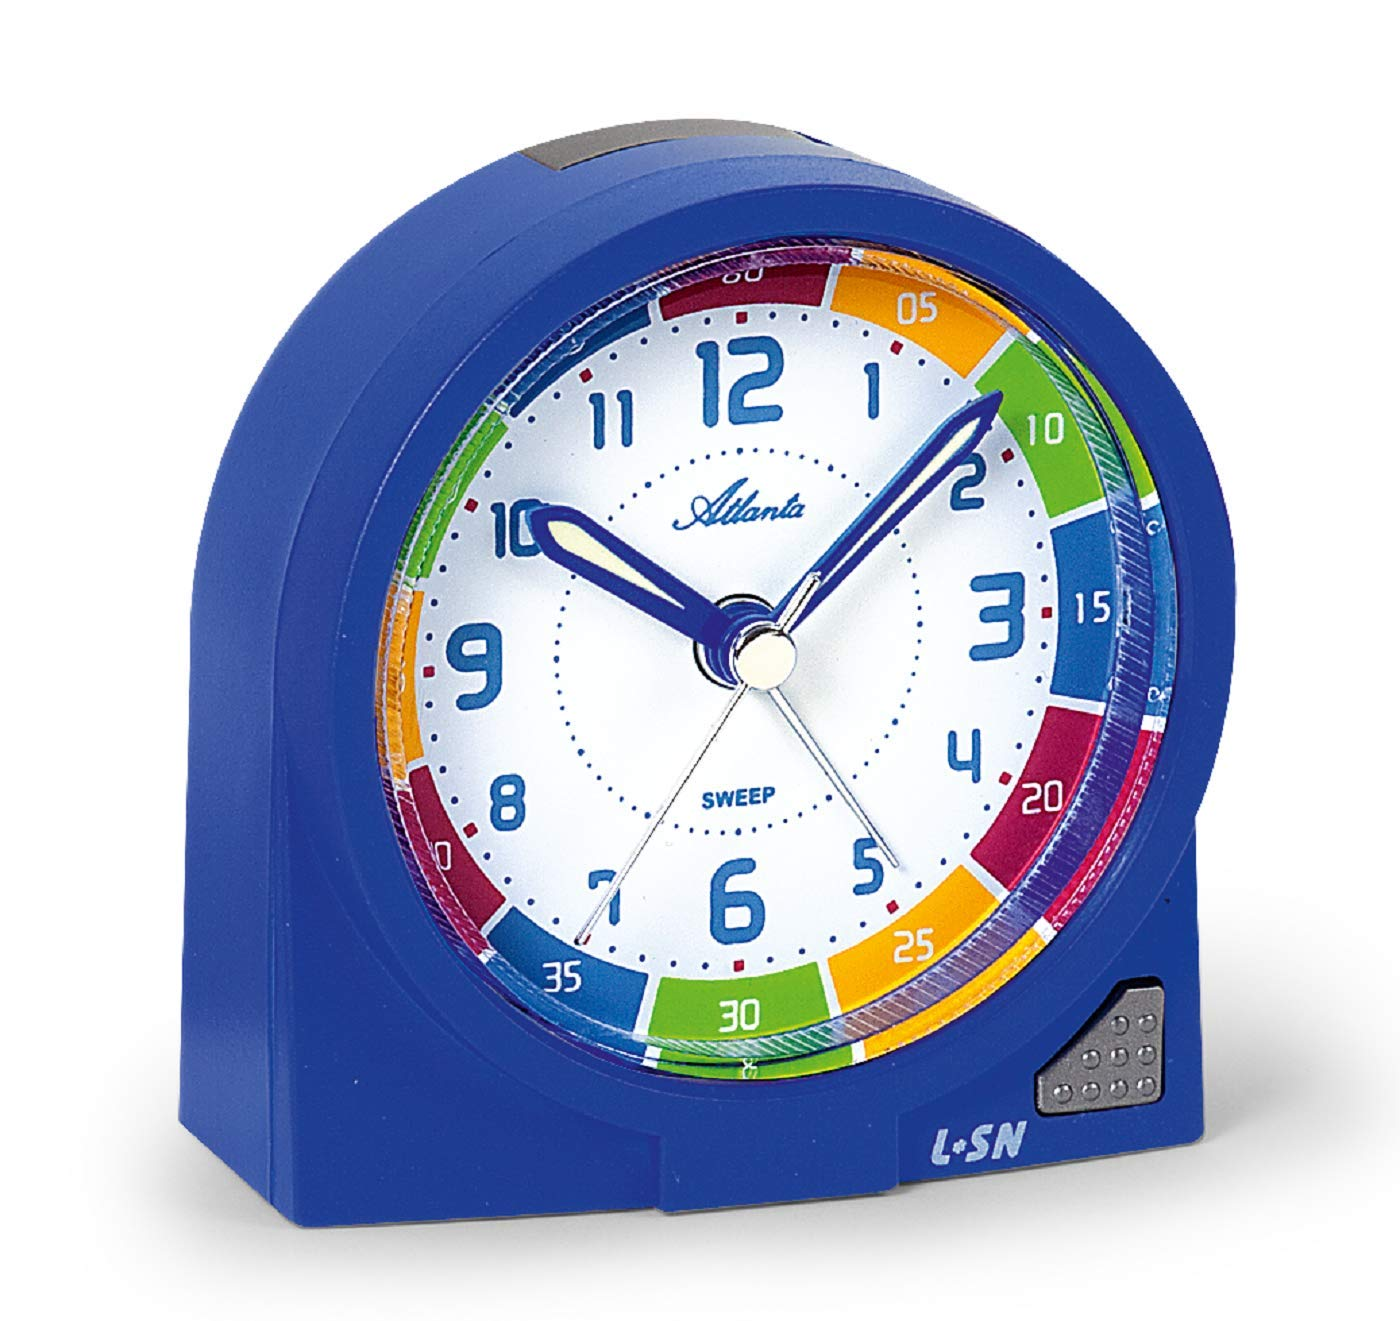 Atlanta Children's Alarm Clock Blue for Boys Analogue Quartz - 1937-5 1937/5